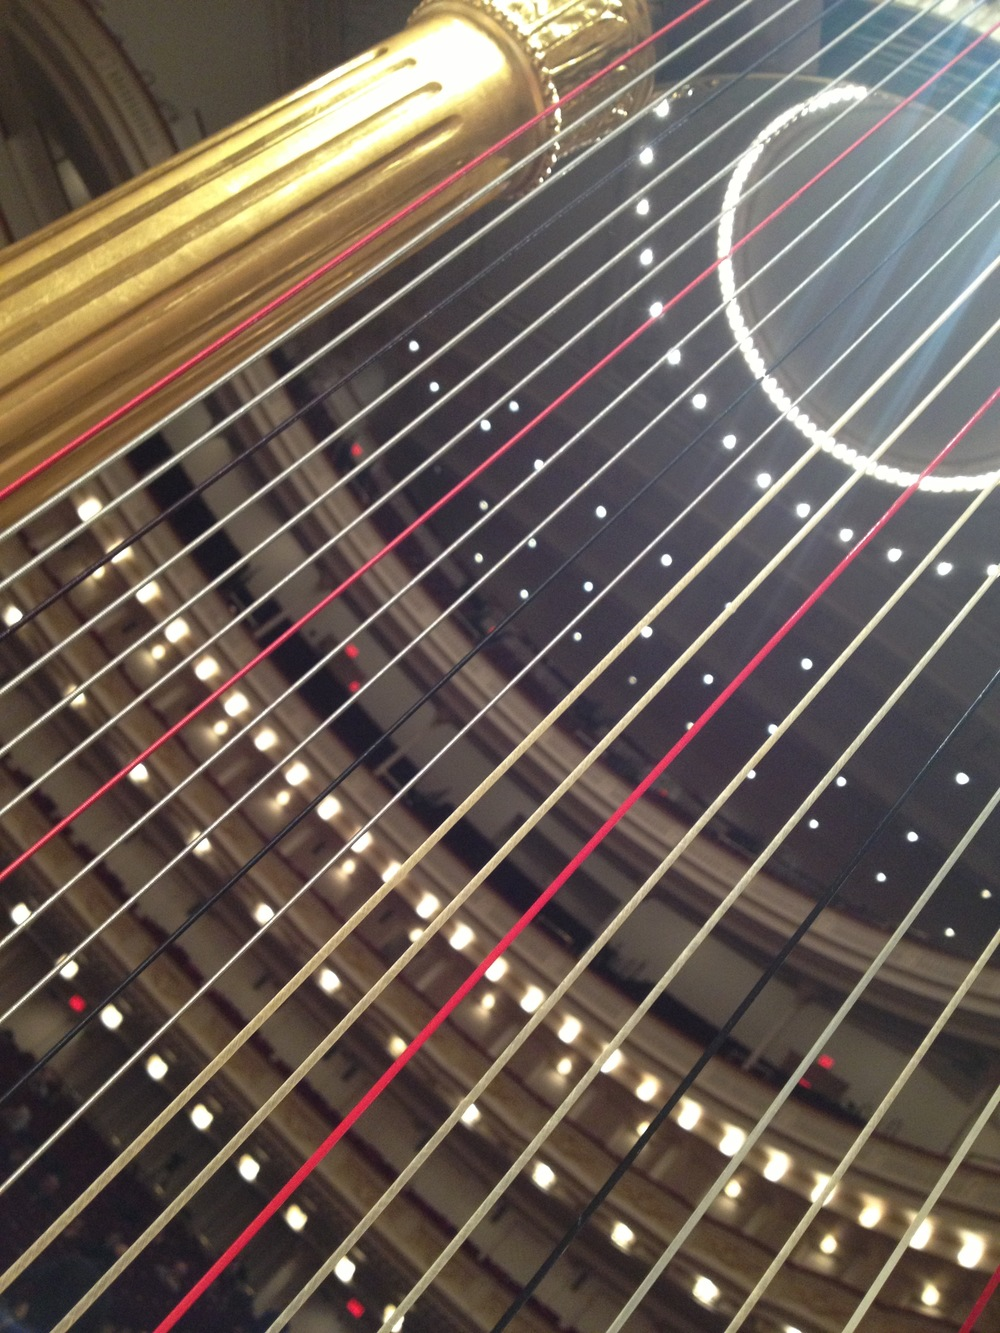 Harp strings - there are 47 of them!